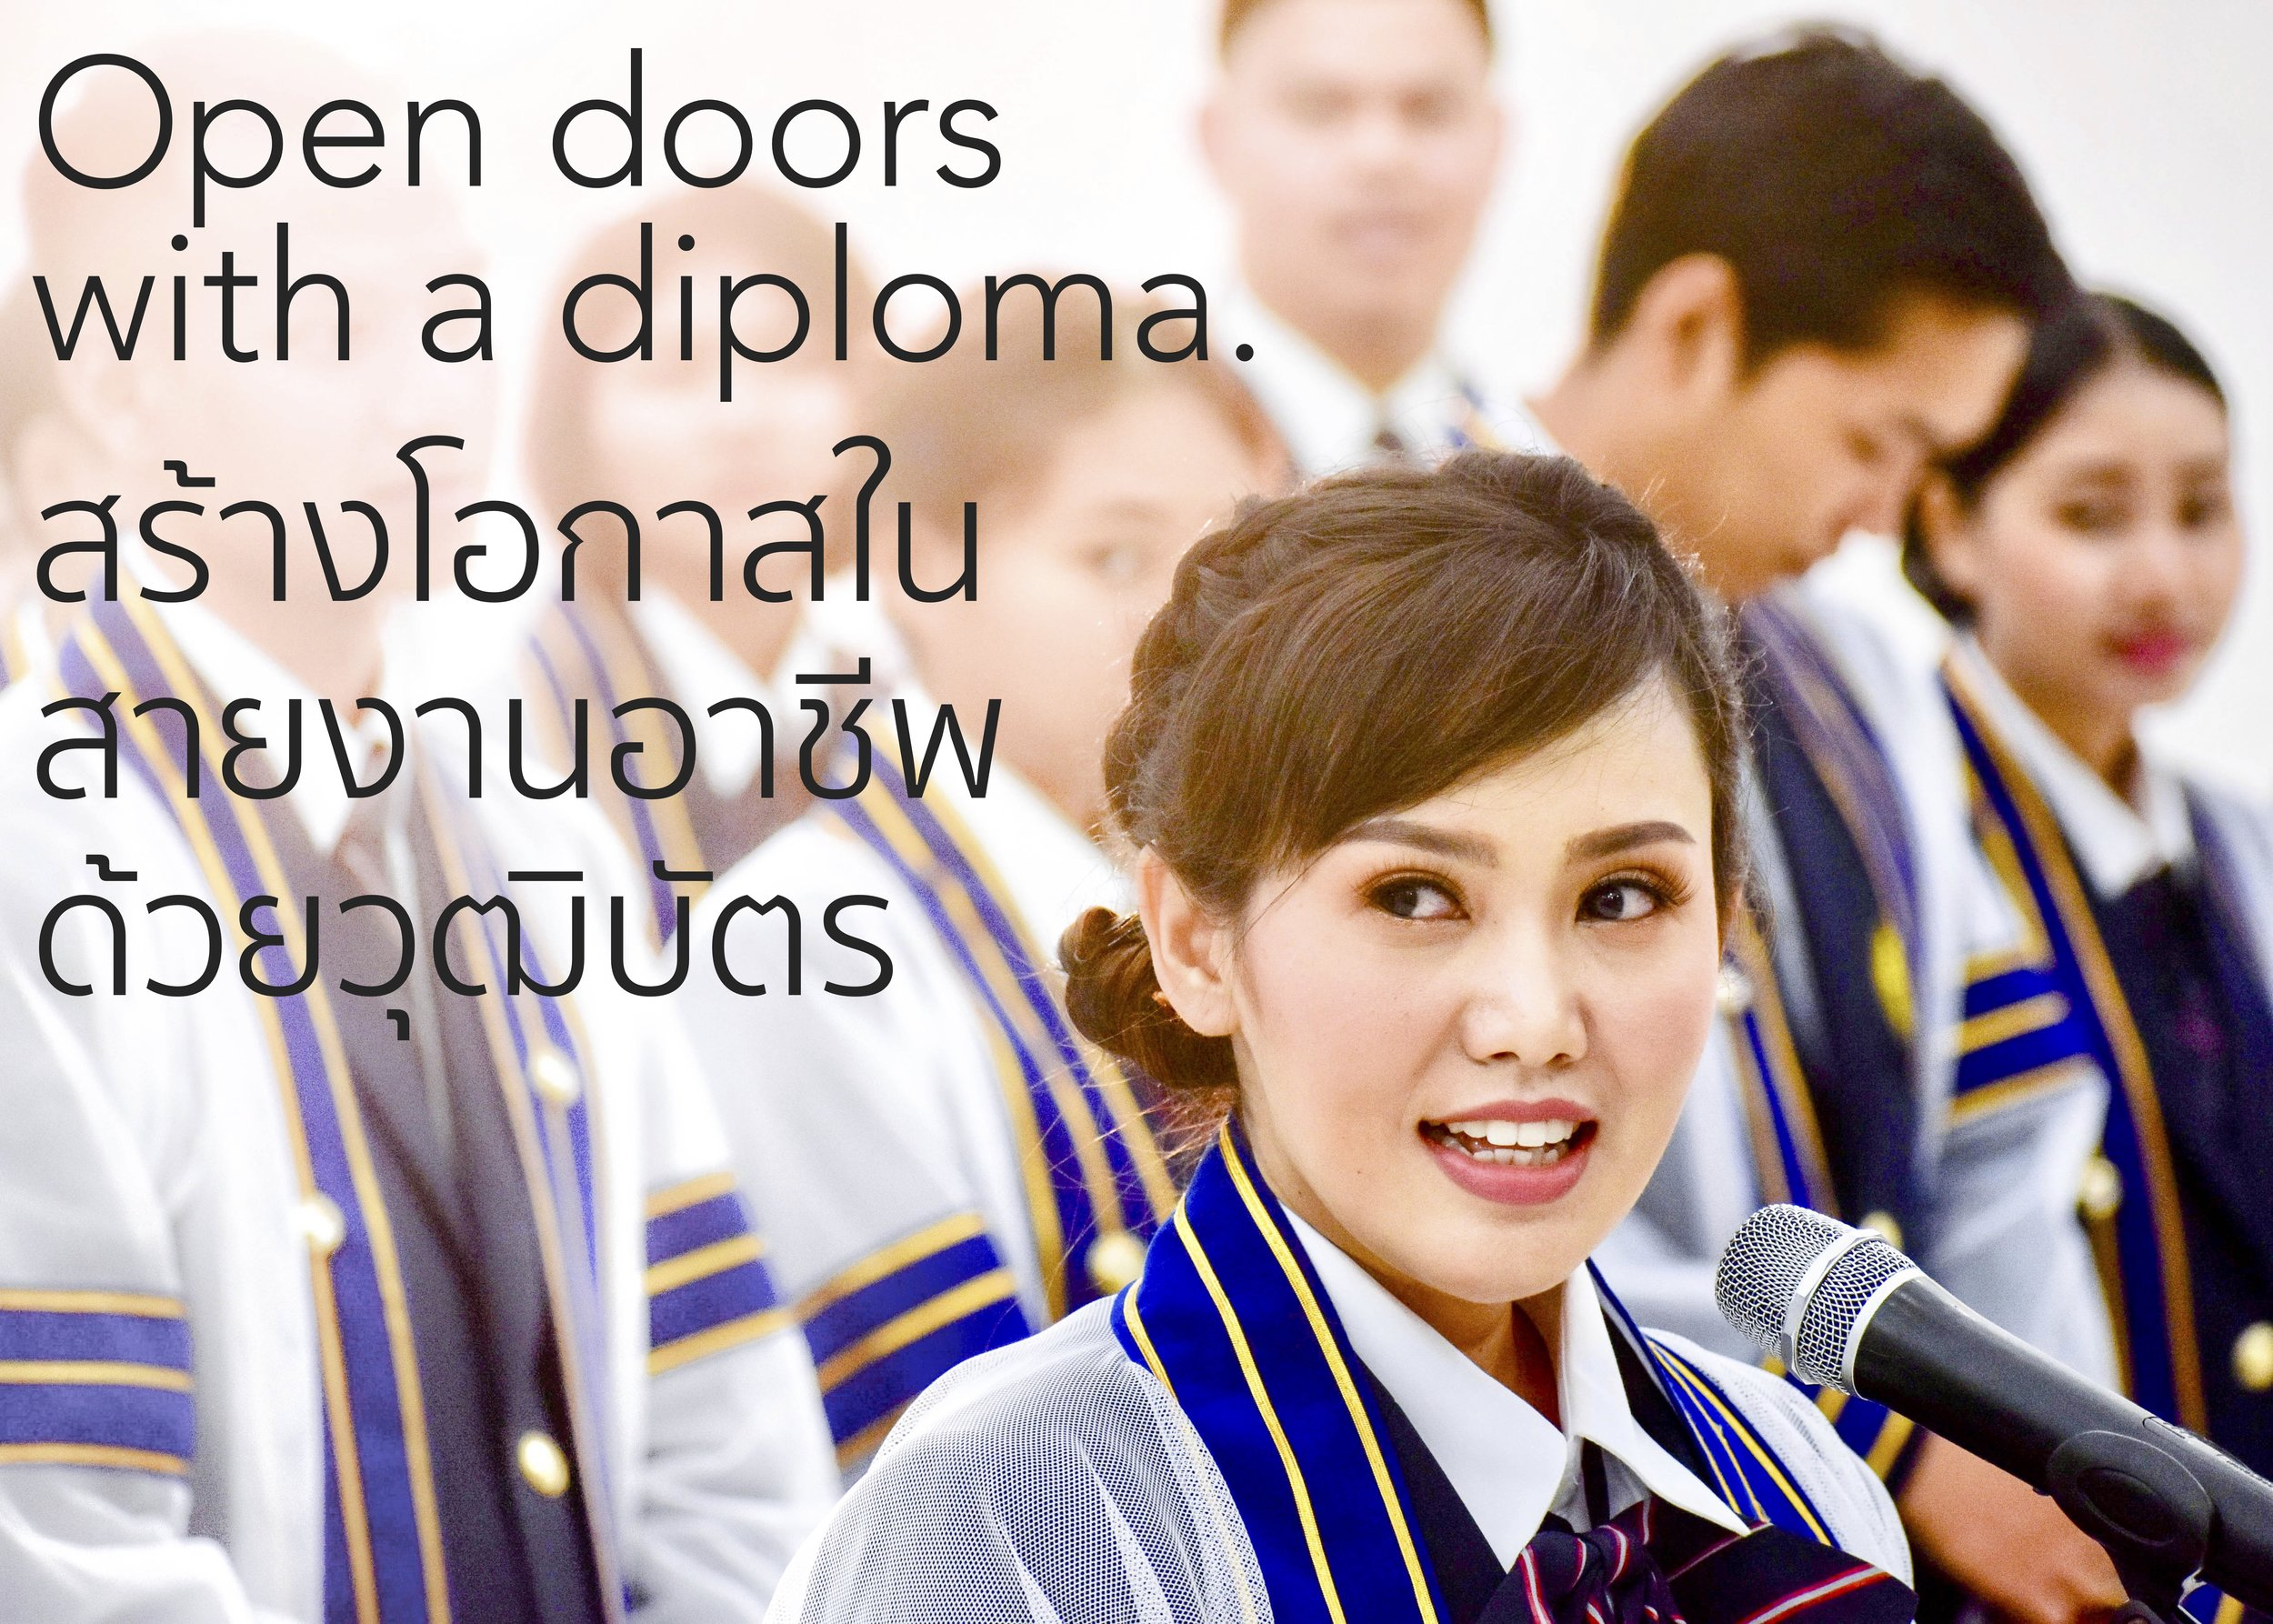 open doors with a diploma2.jpg